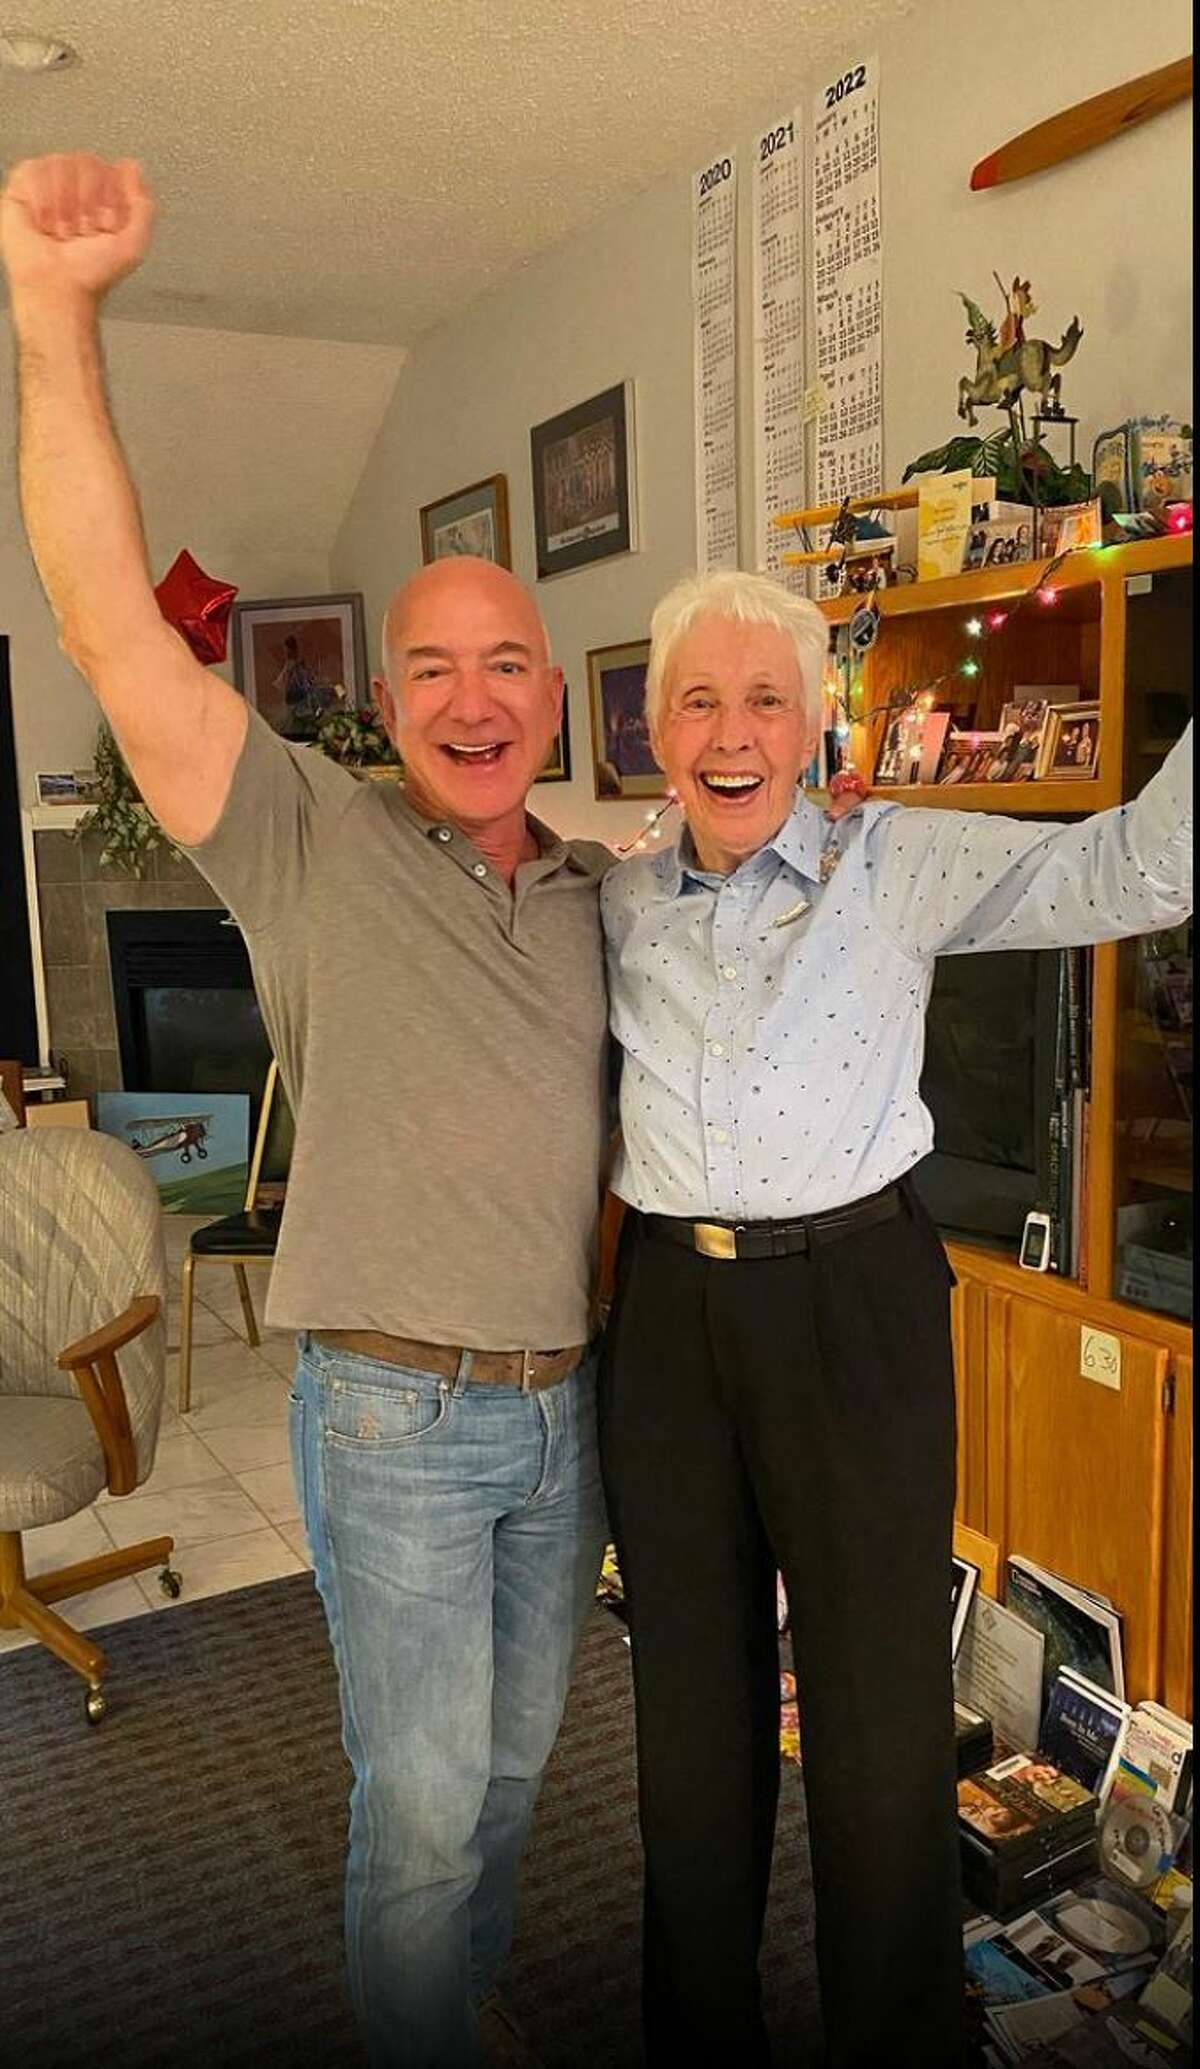 """This image posted on Jeff Bezos Instagram account (@jeffbezos) and on the Blue Origin website on July 1st, 2021 shows the moment when Amazon and Blue Origin founder Jeff Bezos (L) announces to Wally Funk (R) she will fly to Space with him on the Blue Origin's New Sheppard first human flight. - Wally Funk, a 82-year-old woman pilot, will join Jeff Bezos in traveling to space this month on the first crewed spaceflight for the billionaire's company Blue Origin, the firm announced Thursday. Funk will become the oldest person ever to fly to space when she takes part in the July 20 journey aboard the New Shepard launch vehicle along with Bezos, his brother Mark and the unnamed winner of an auction for another seat on the aircraft. (Photo by - / BLUE ORIGIN / AFP) / RESTRICTED TO EDITORIAL USE - MANDATORY CREDIT """"AFP PHOTO /BLUE ORIGIN"""" - NO MARKETING - NO ADVERTISING CAMPAIGNS - DISTRIBUTED AS A SERVICE TO CLIENTS"""